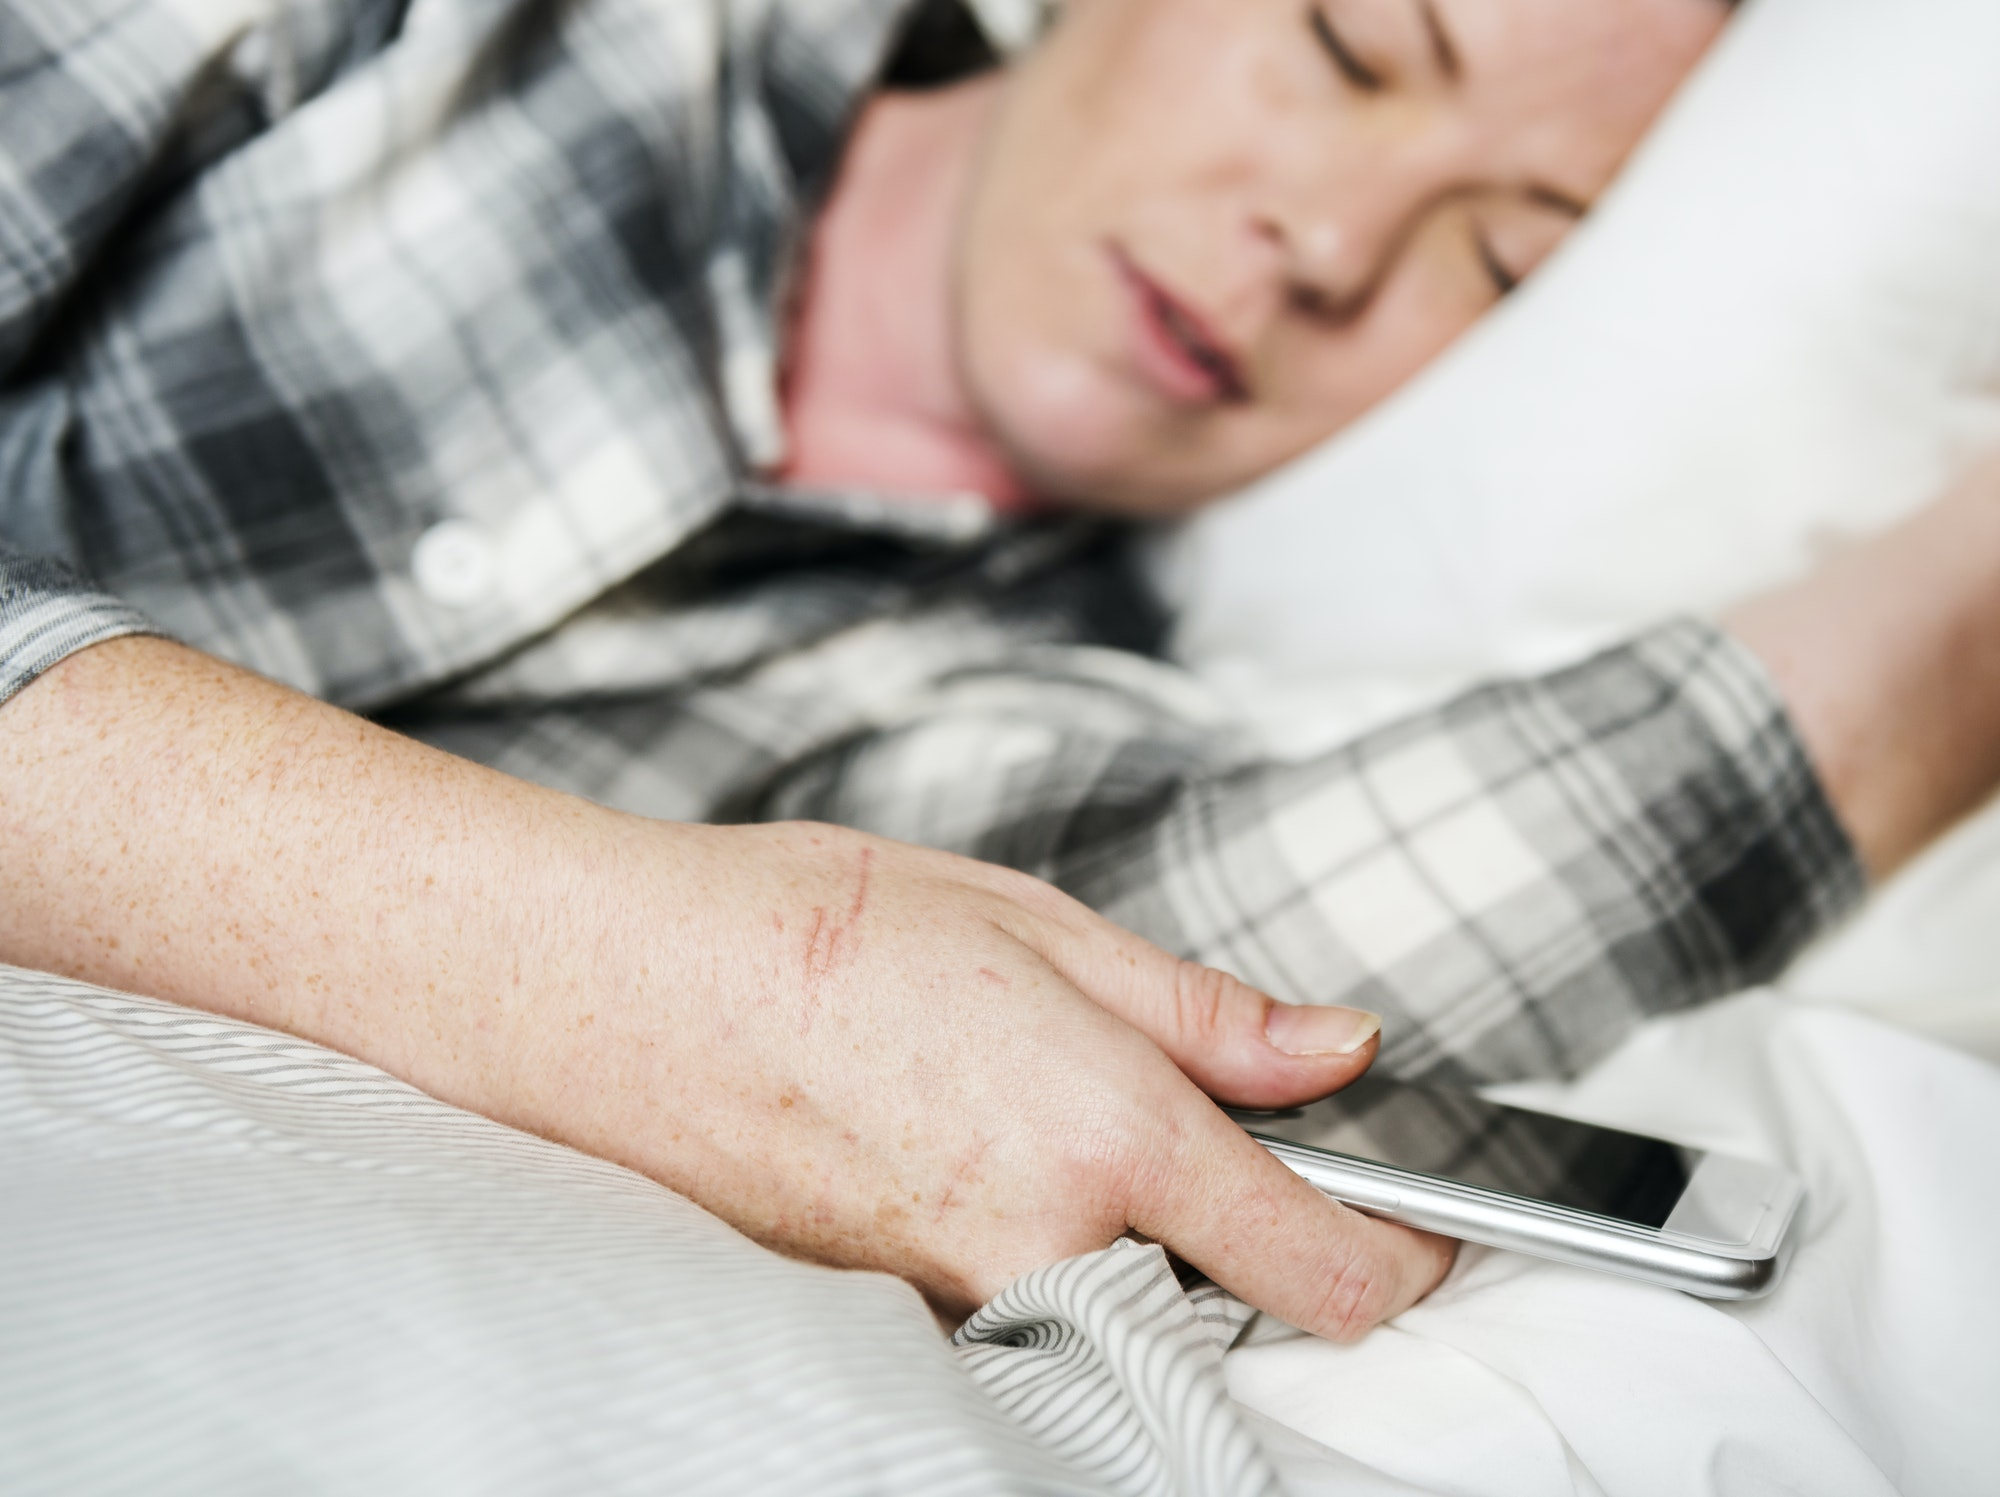 A woman sleeping in bed while carrying a phone